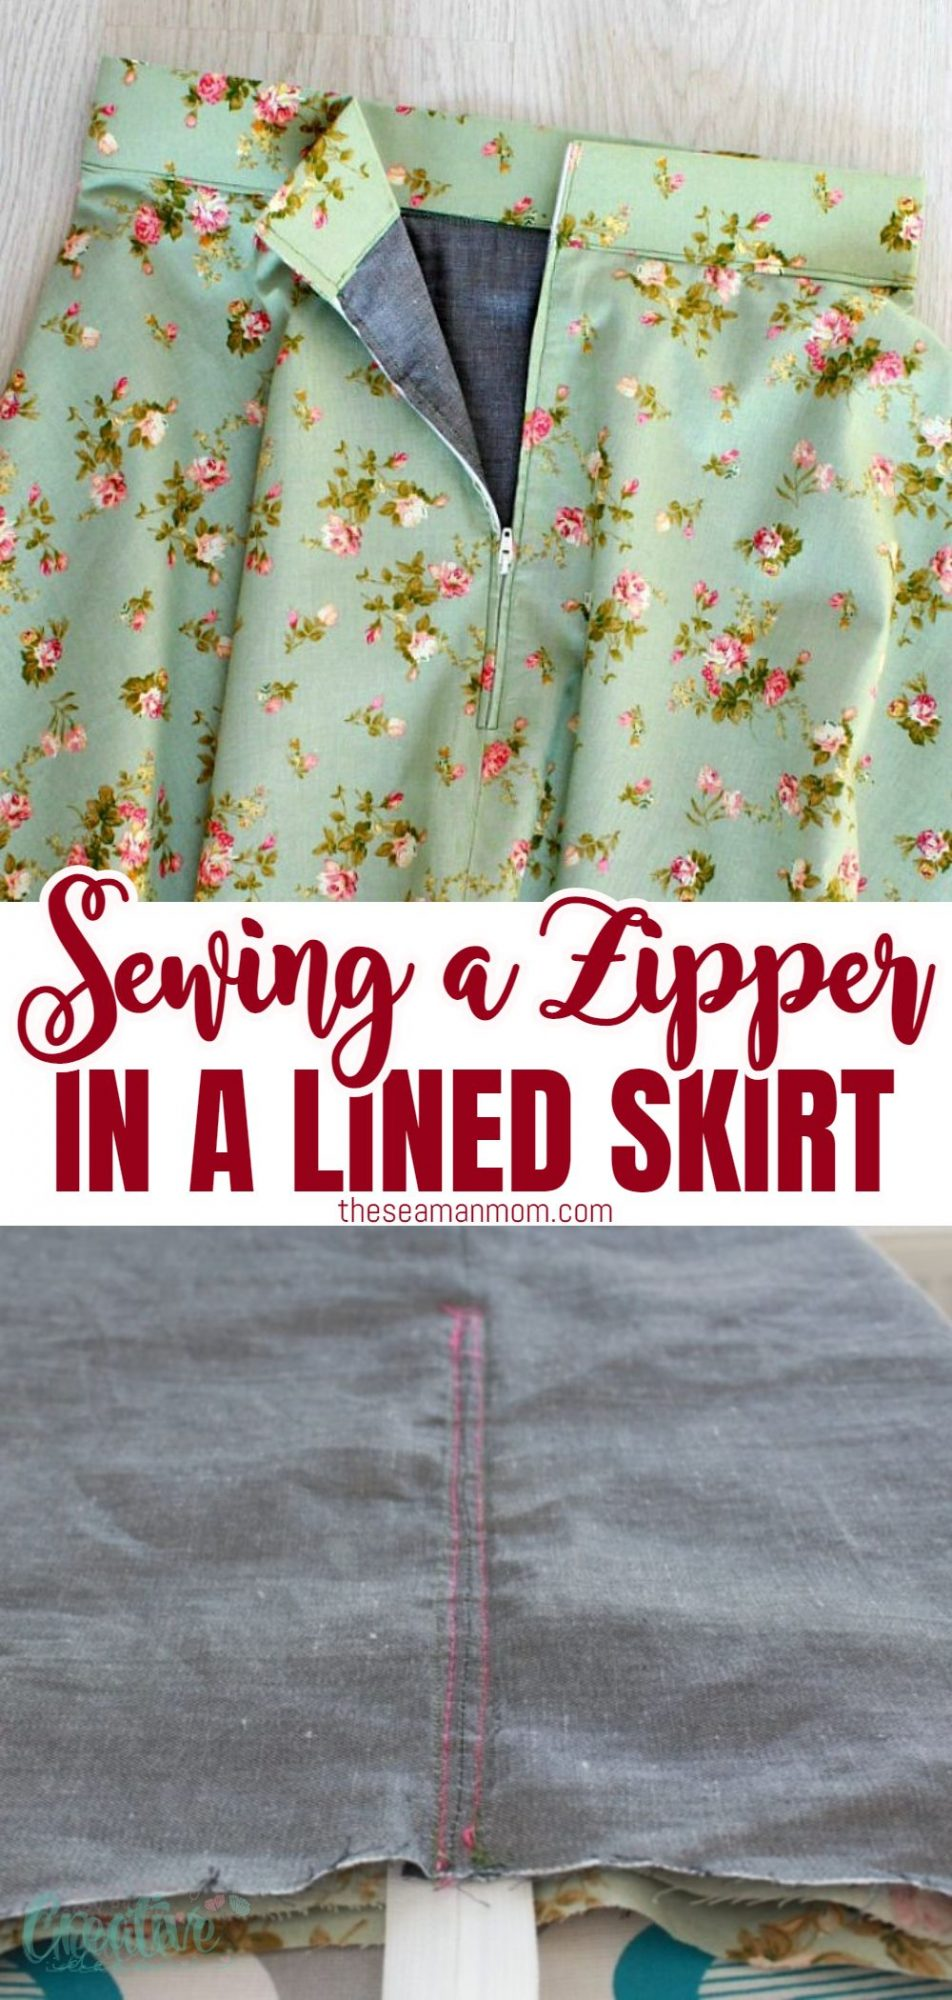 Hw to sew a zipper on a skirt with lining